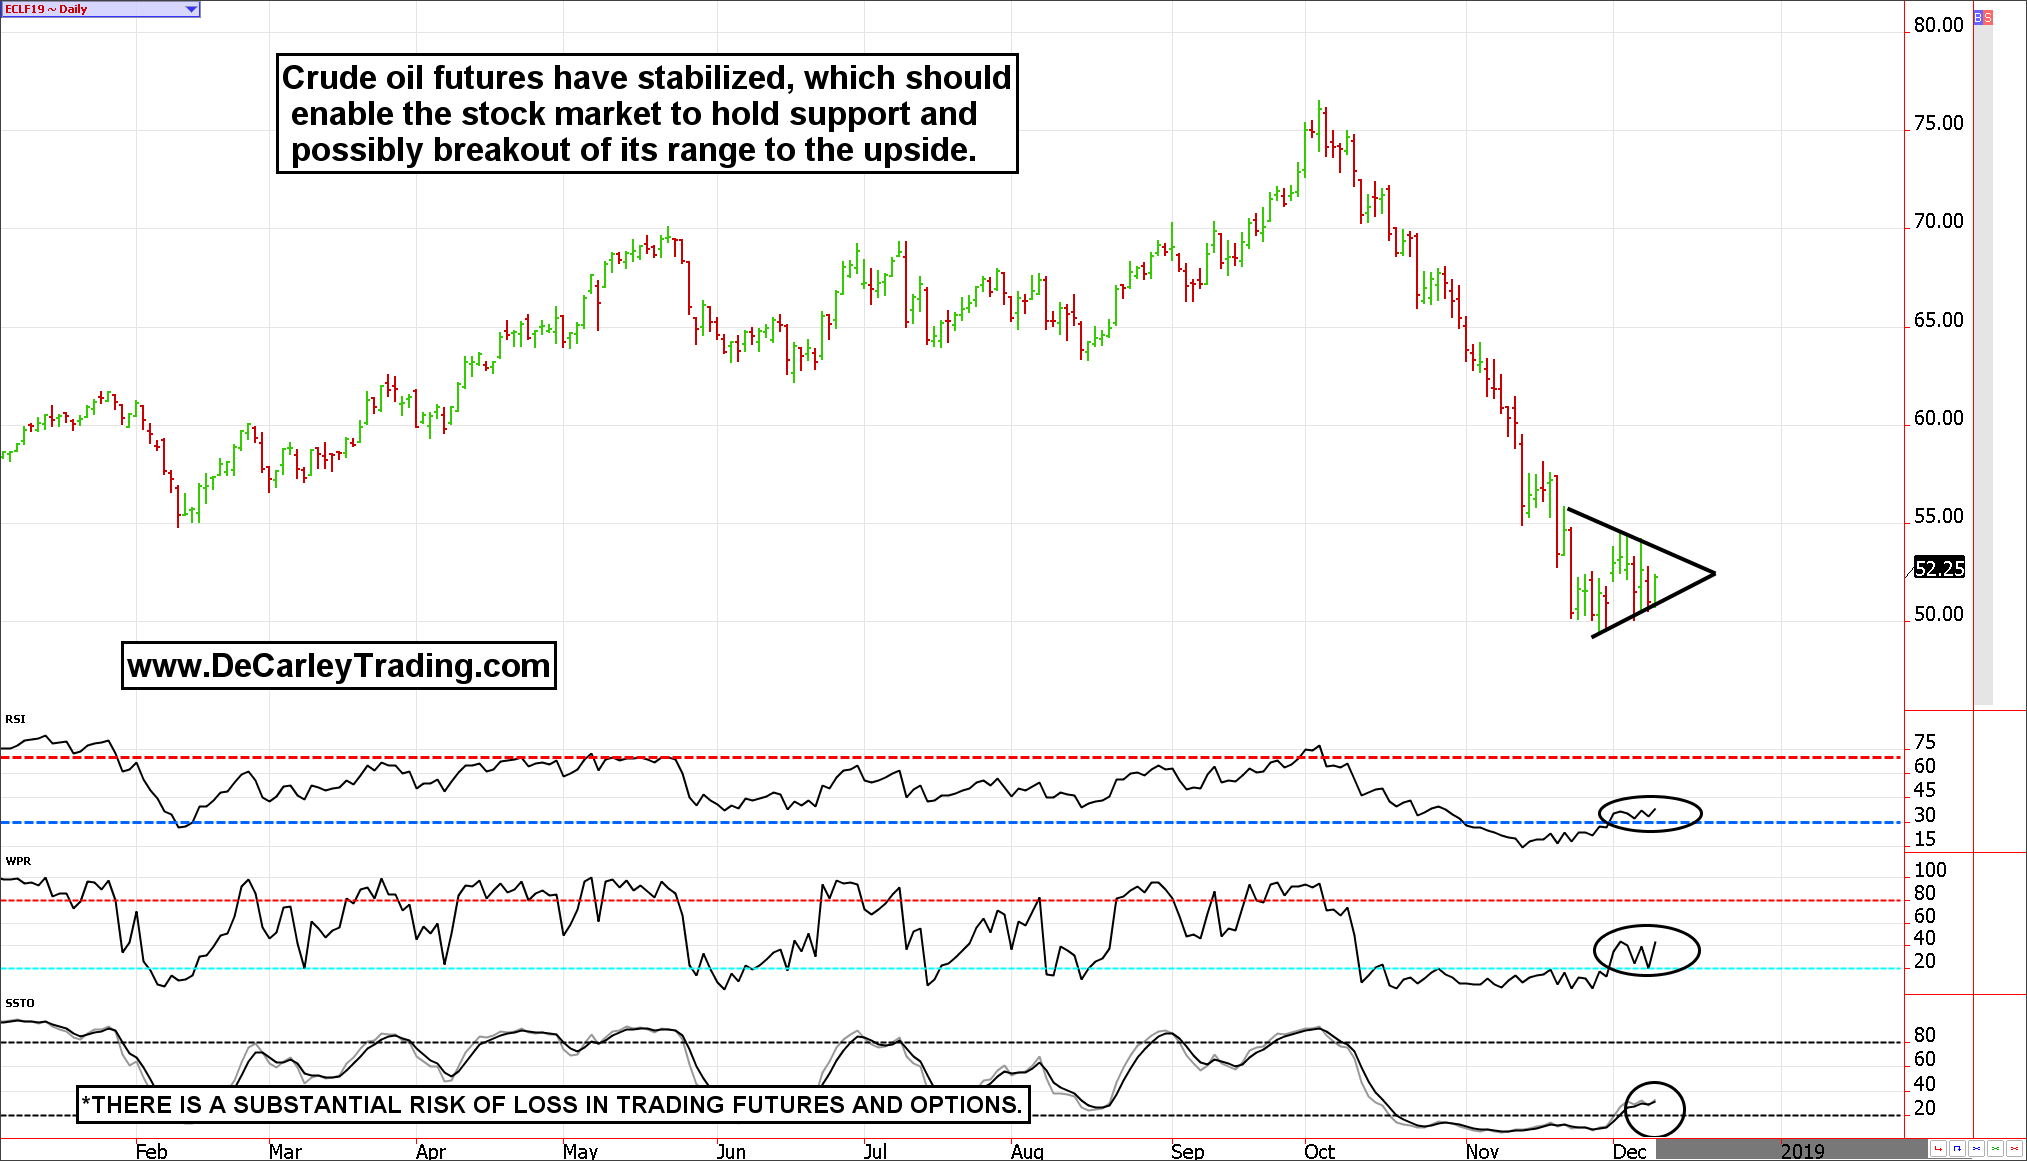 Crude oil futures stabilize